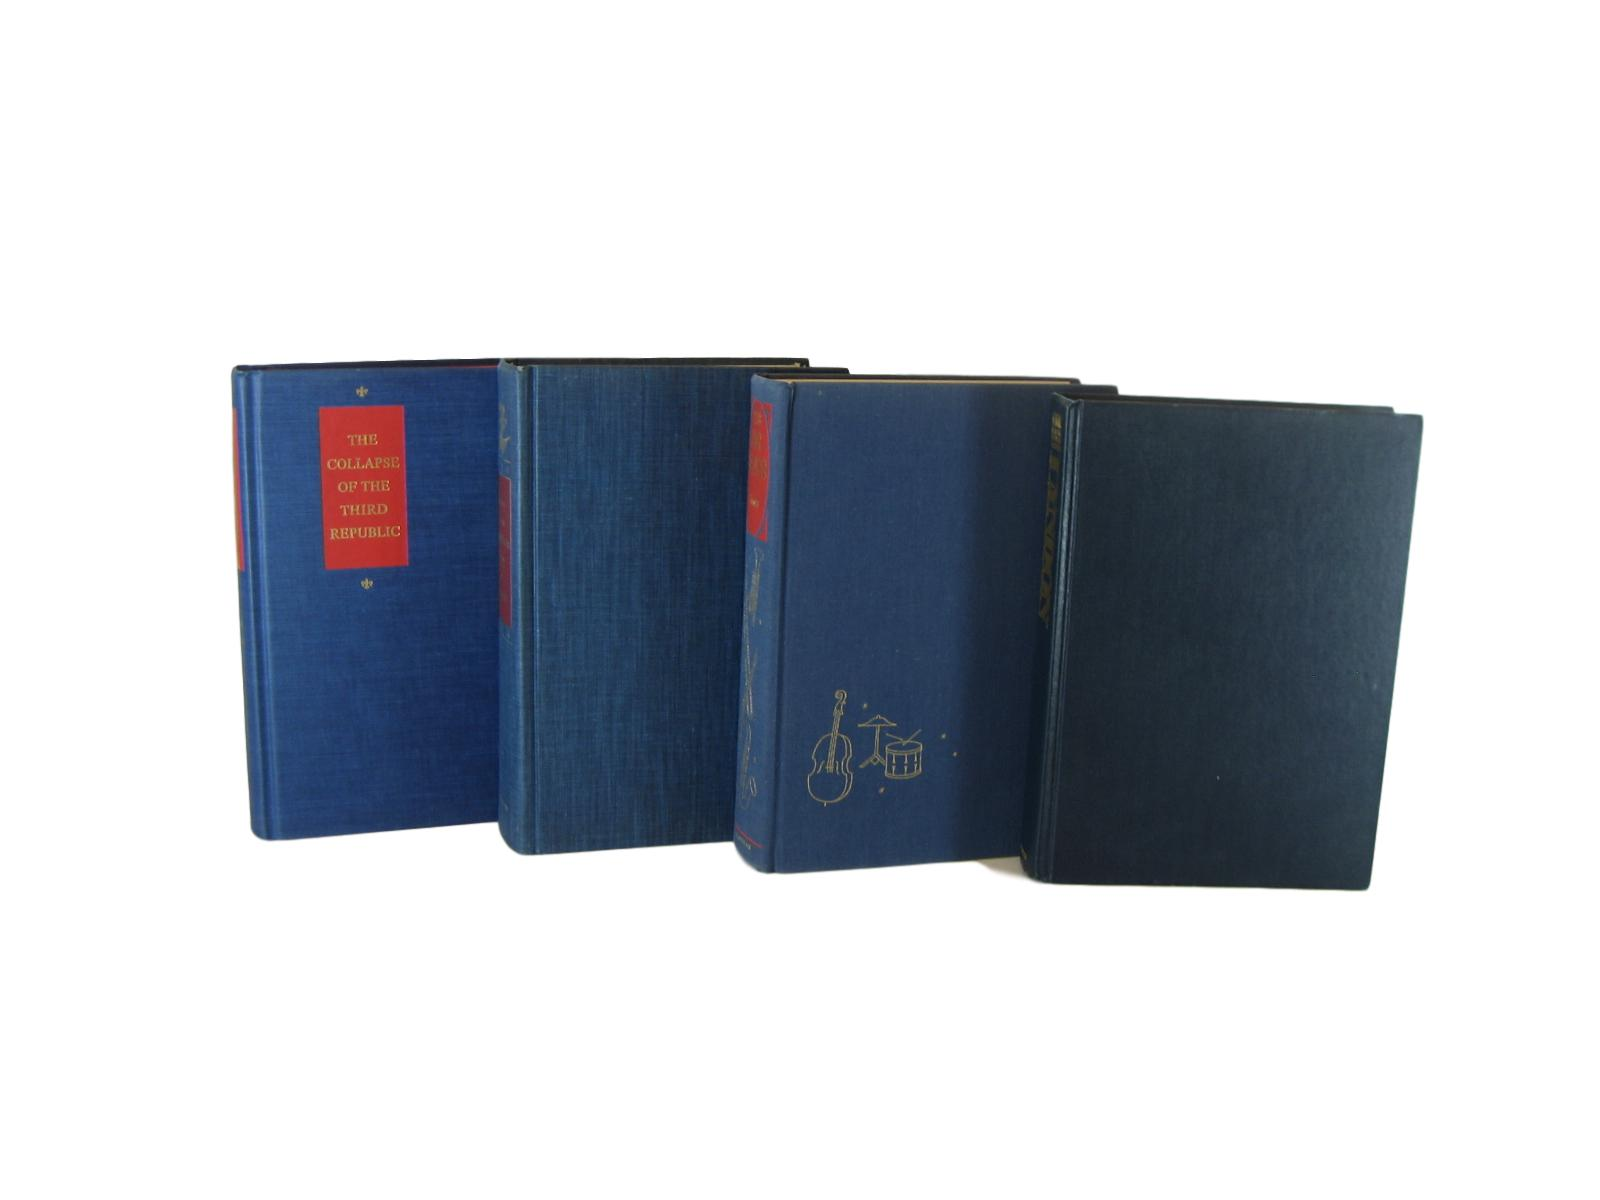 Blue Decorative Books with Red Accents for Bookshelf Decor, S/4 - Decades of Vintage